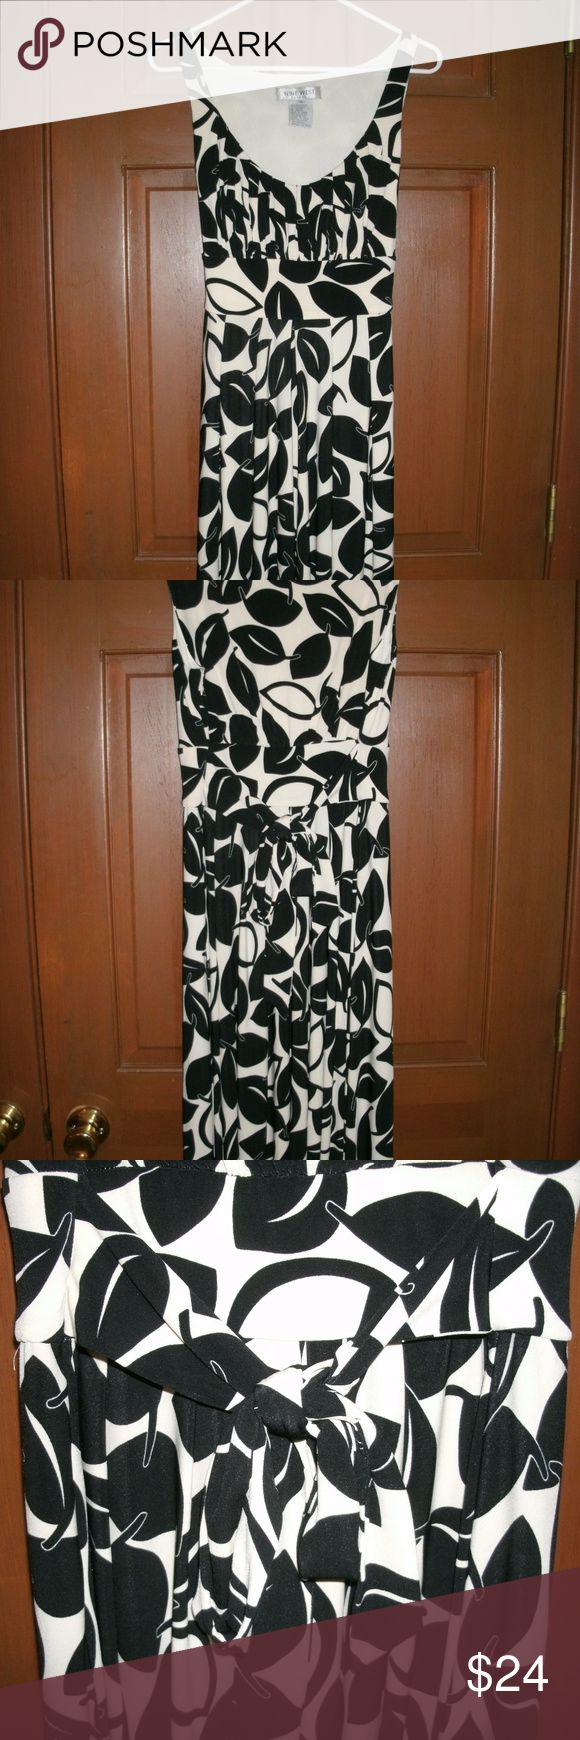 Nine West Black White Sleeveless Midi Dress Nine West Dress  ~white with black leafs ~skirt of dress is A-line ~side zipper ~back tie ~falls mid-calf  Bust: 32 inches     Shoulders: 13 inches     Waist: 32 inches     Hips: 52 inches     Length: 39 inches   95% Polyester; 5% Spandex  Good used condition. Some faint marks on the front of the dress - about 8 inches from hem. Nine West Dresses Midi